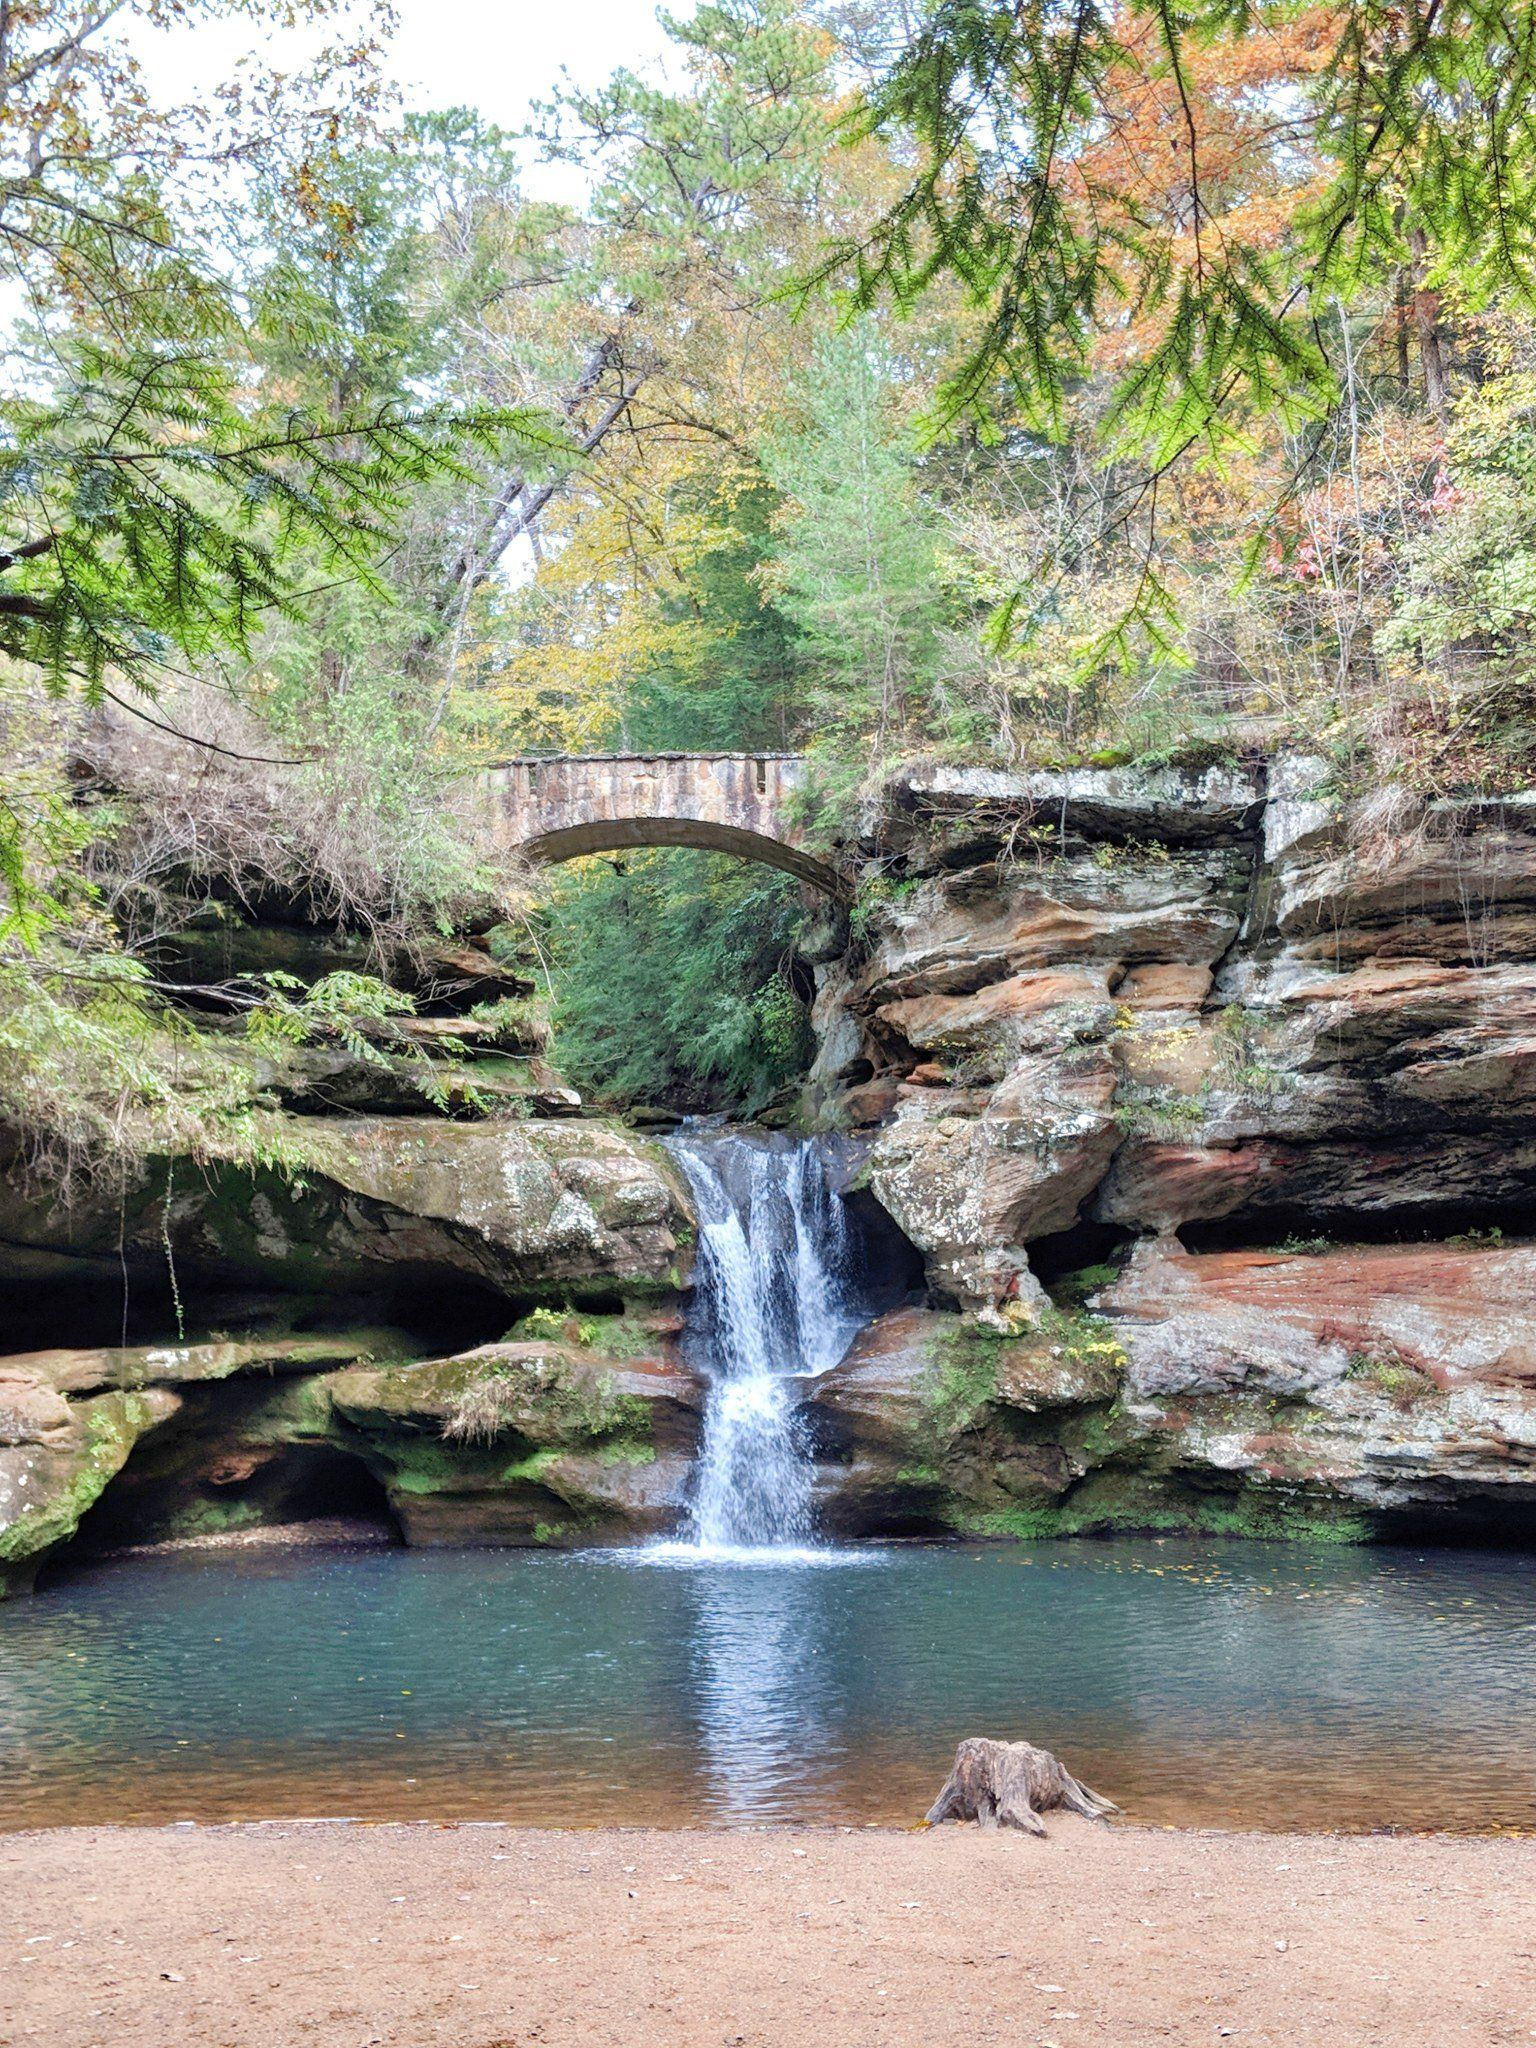 Camping and hiking at hocking hills state park in ohio